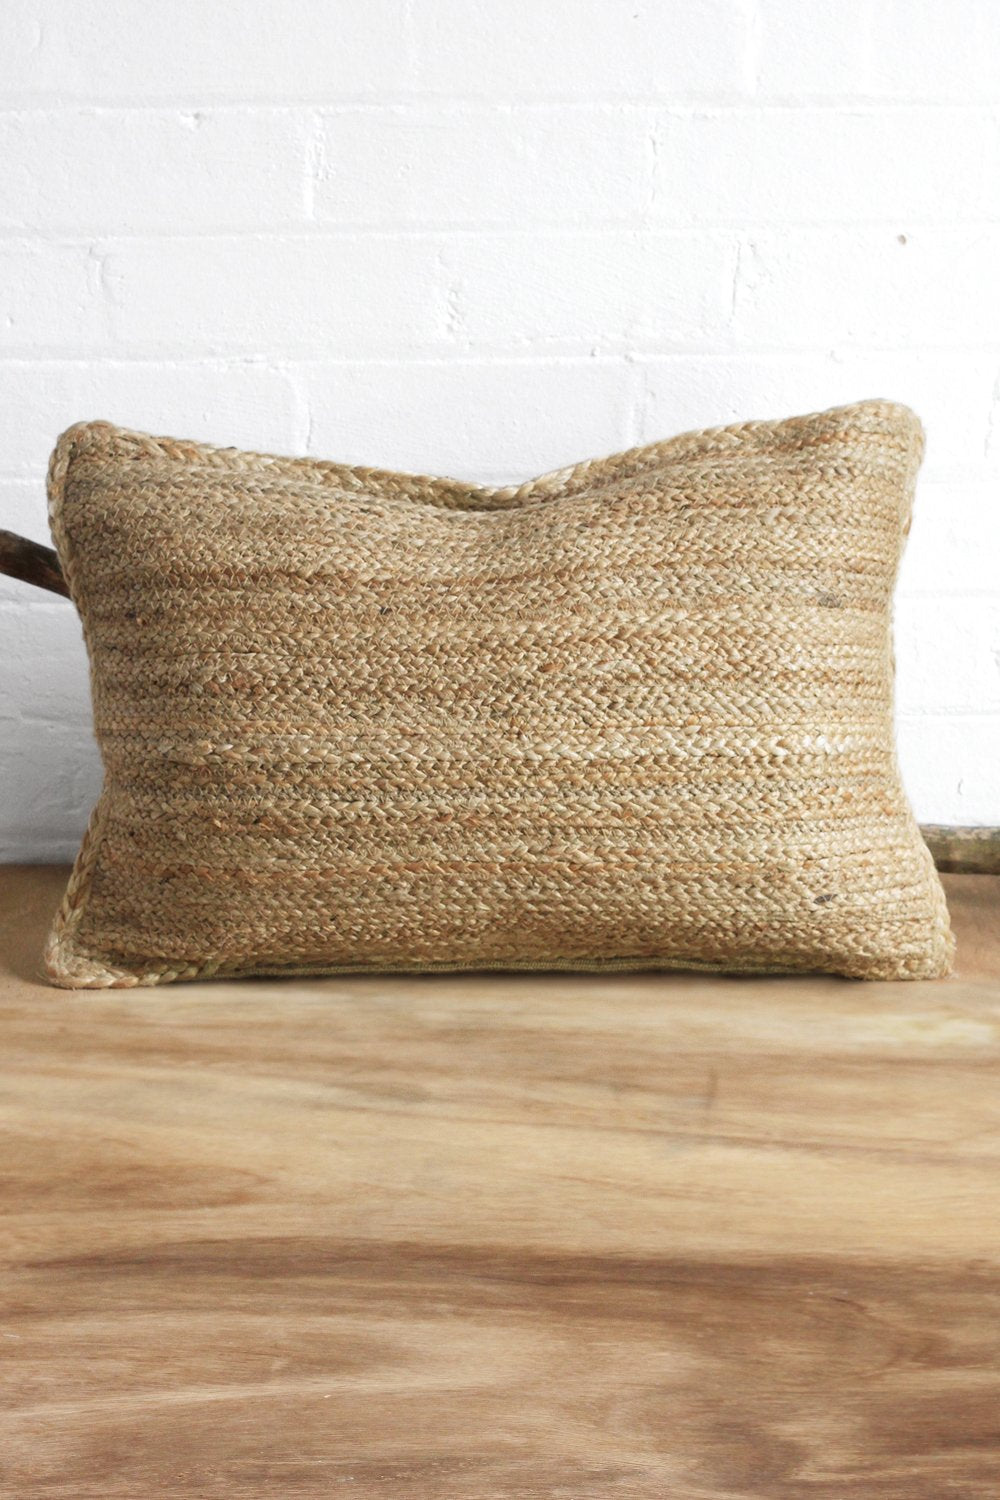 SanBasics Rectangle Jute Pillow With Insert